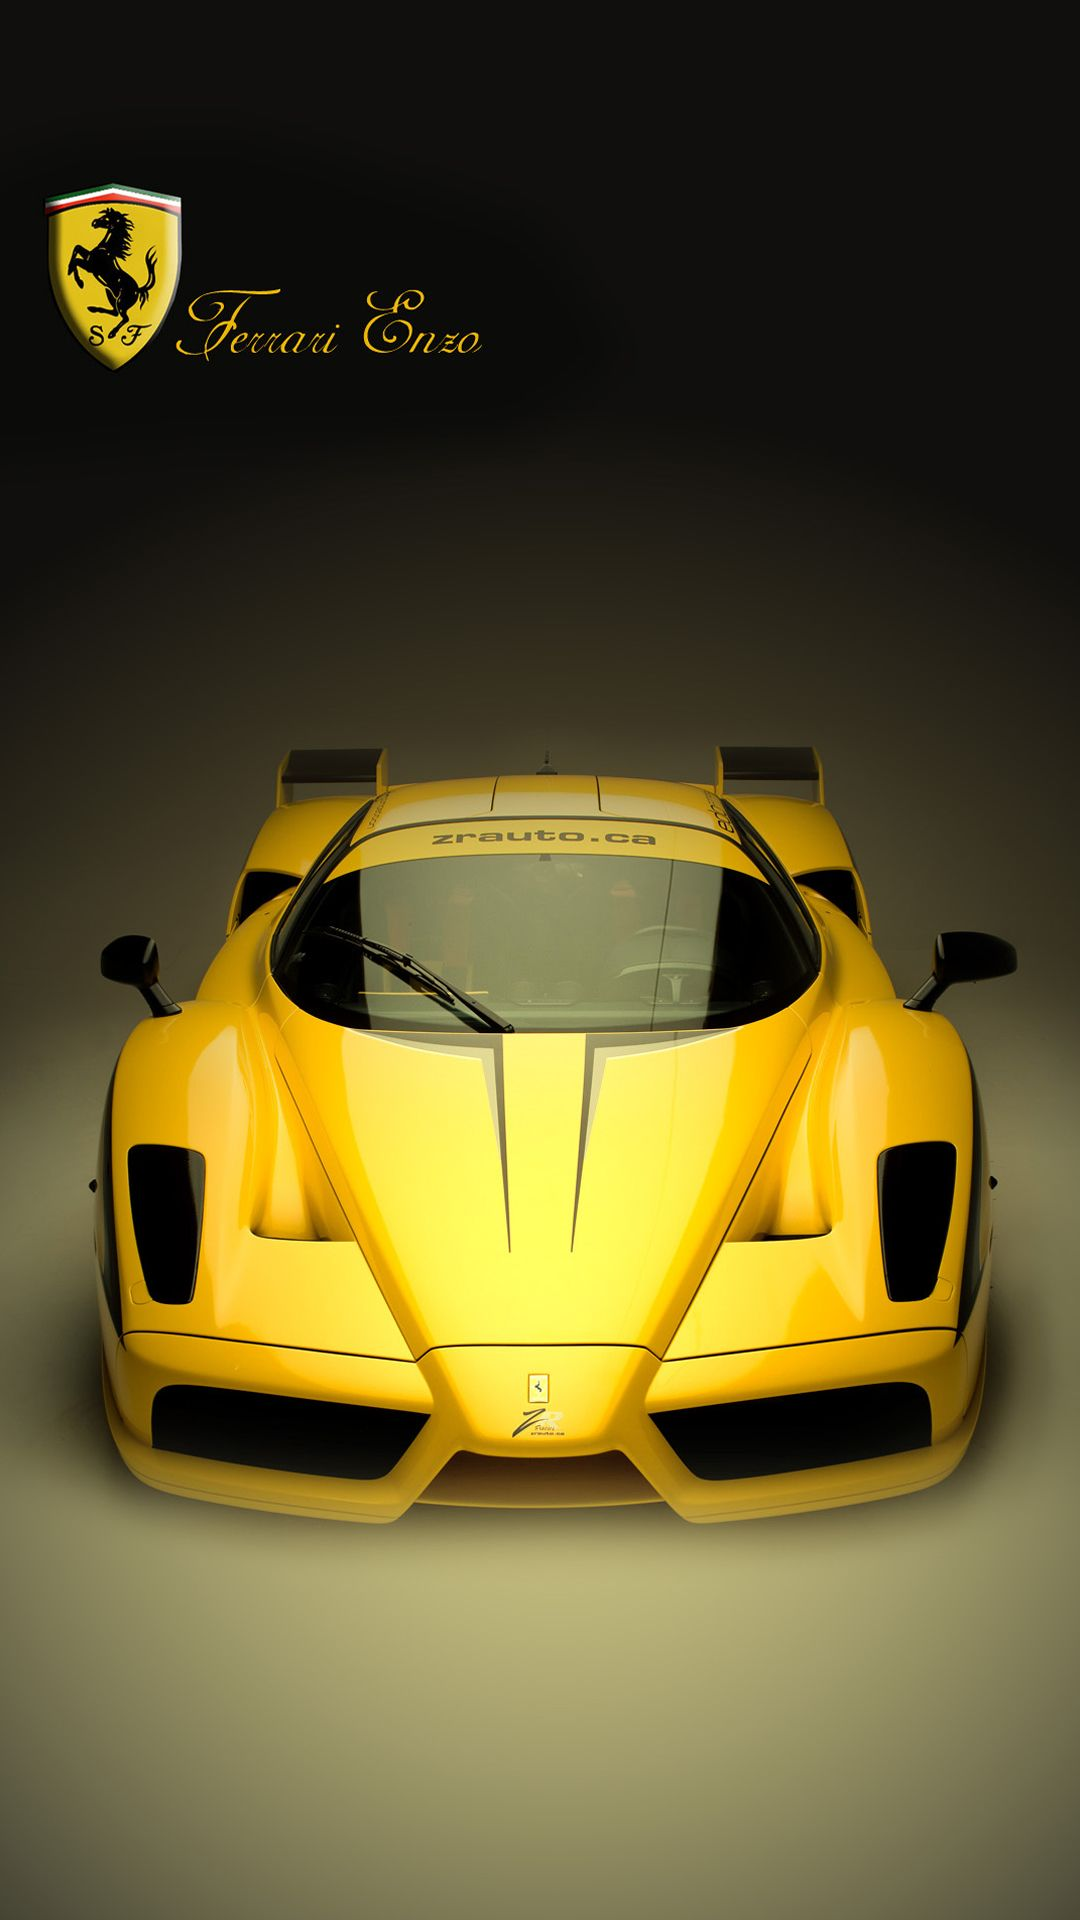 World Luxury Car Iphone Wallpaper Iphone Wallpapers